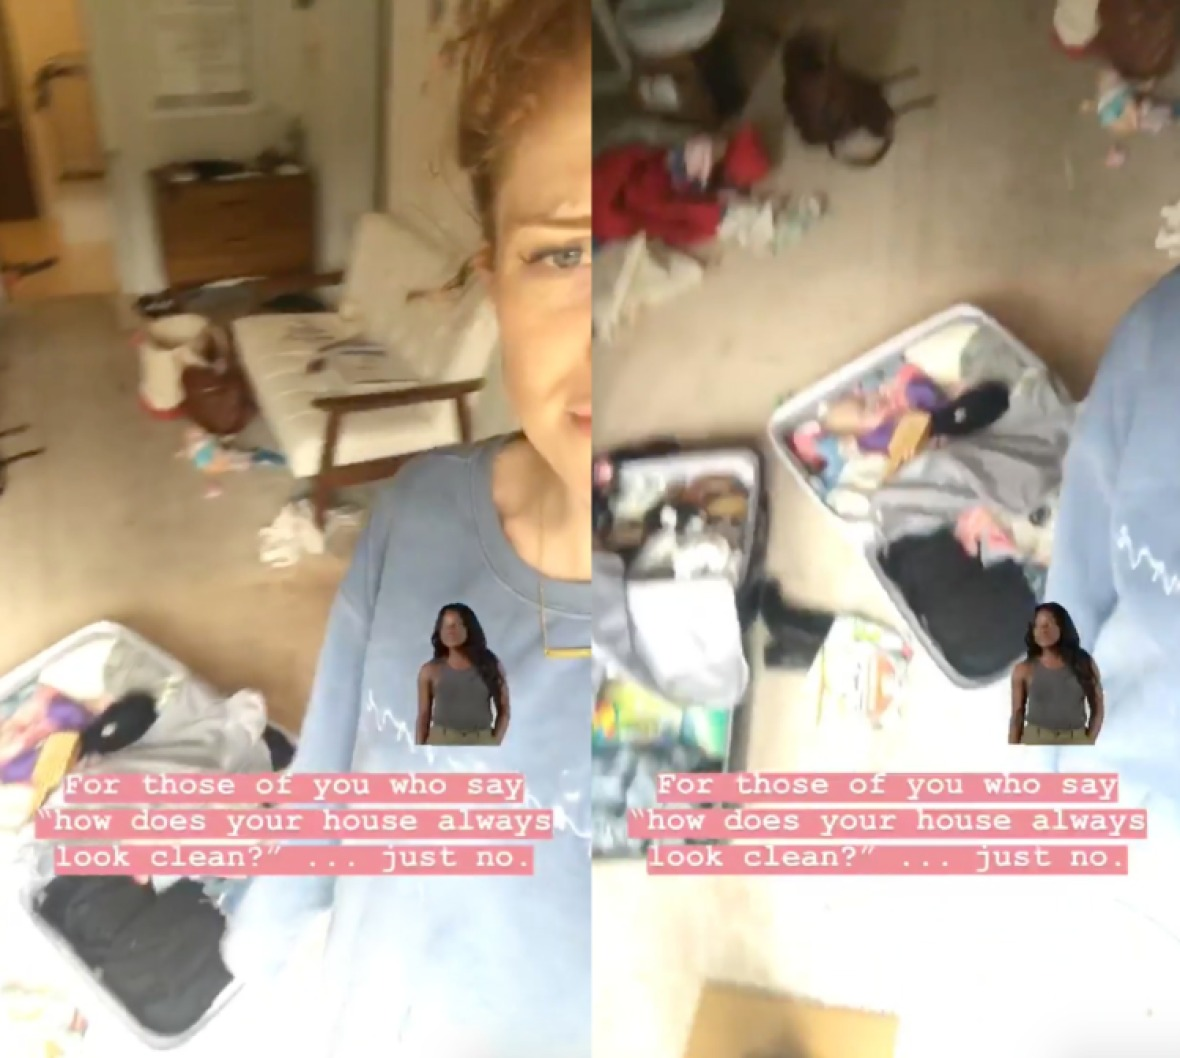 audrey roloff's instagram story about her messy house